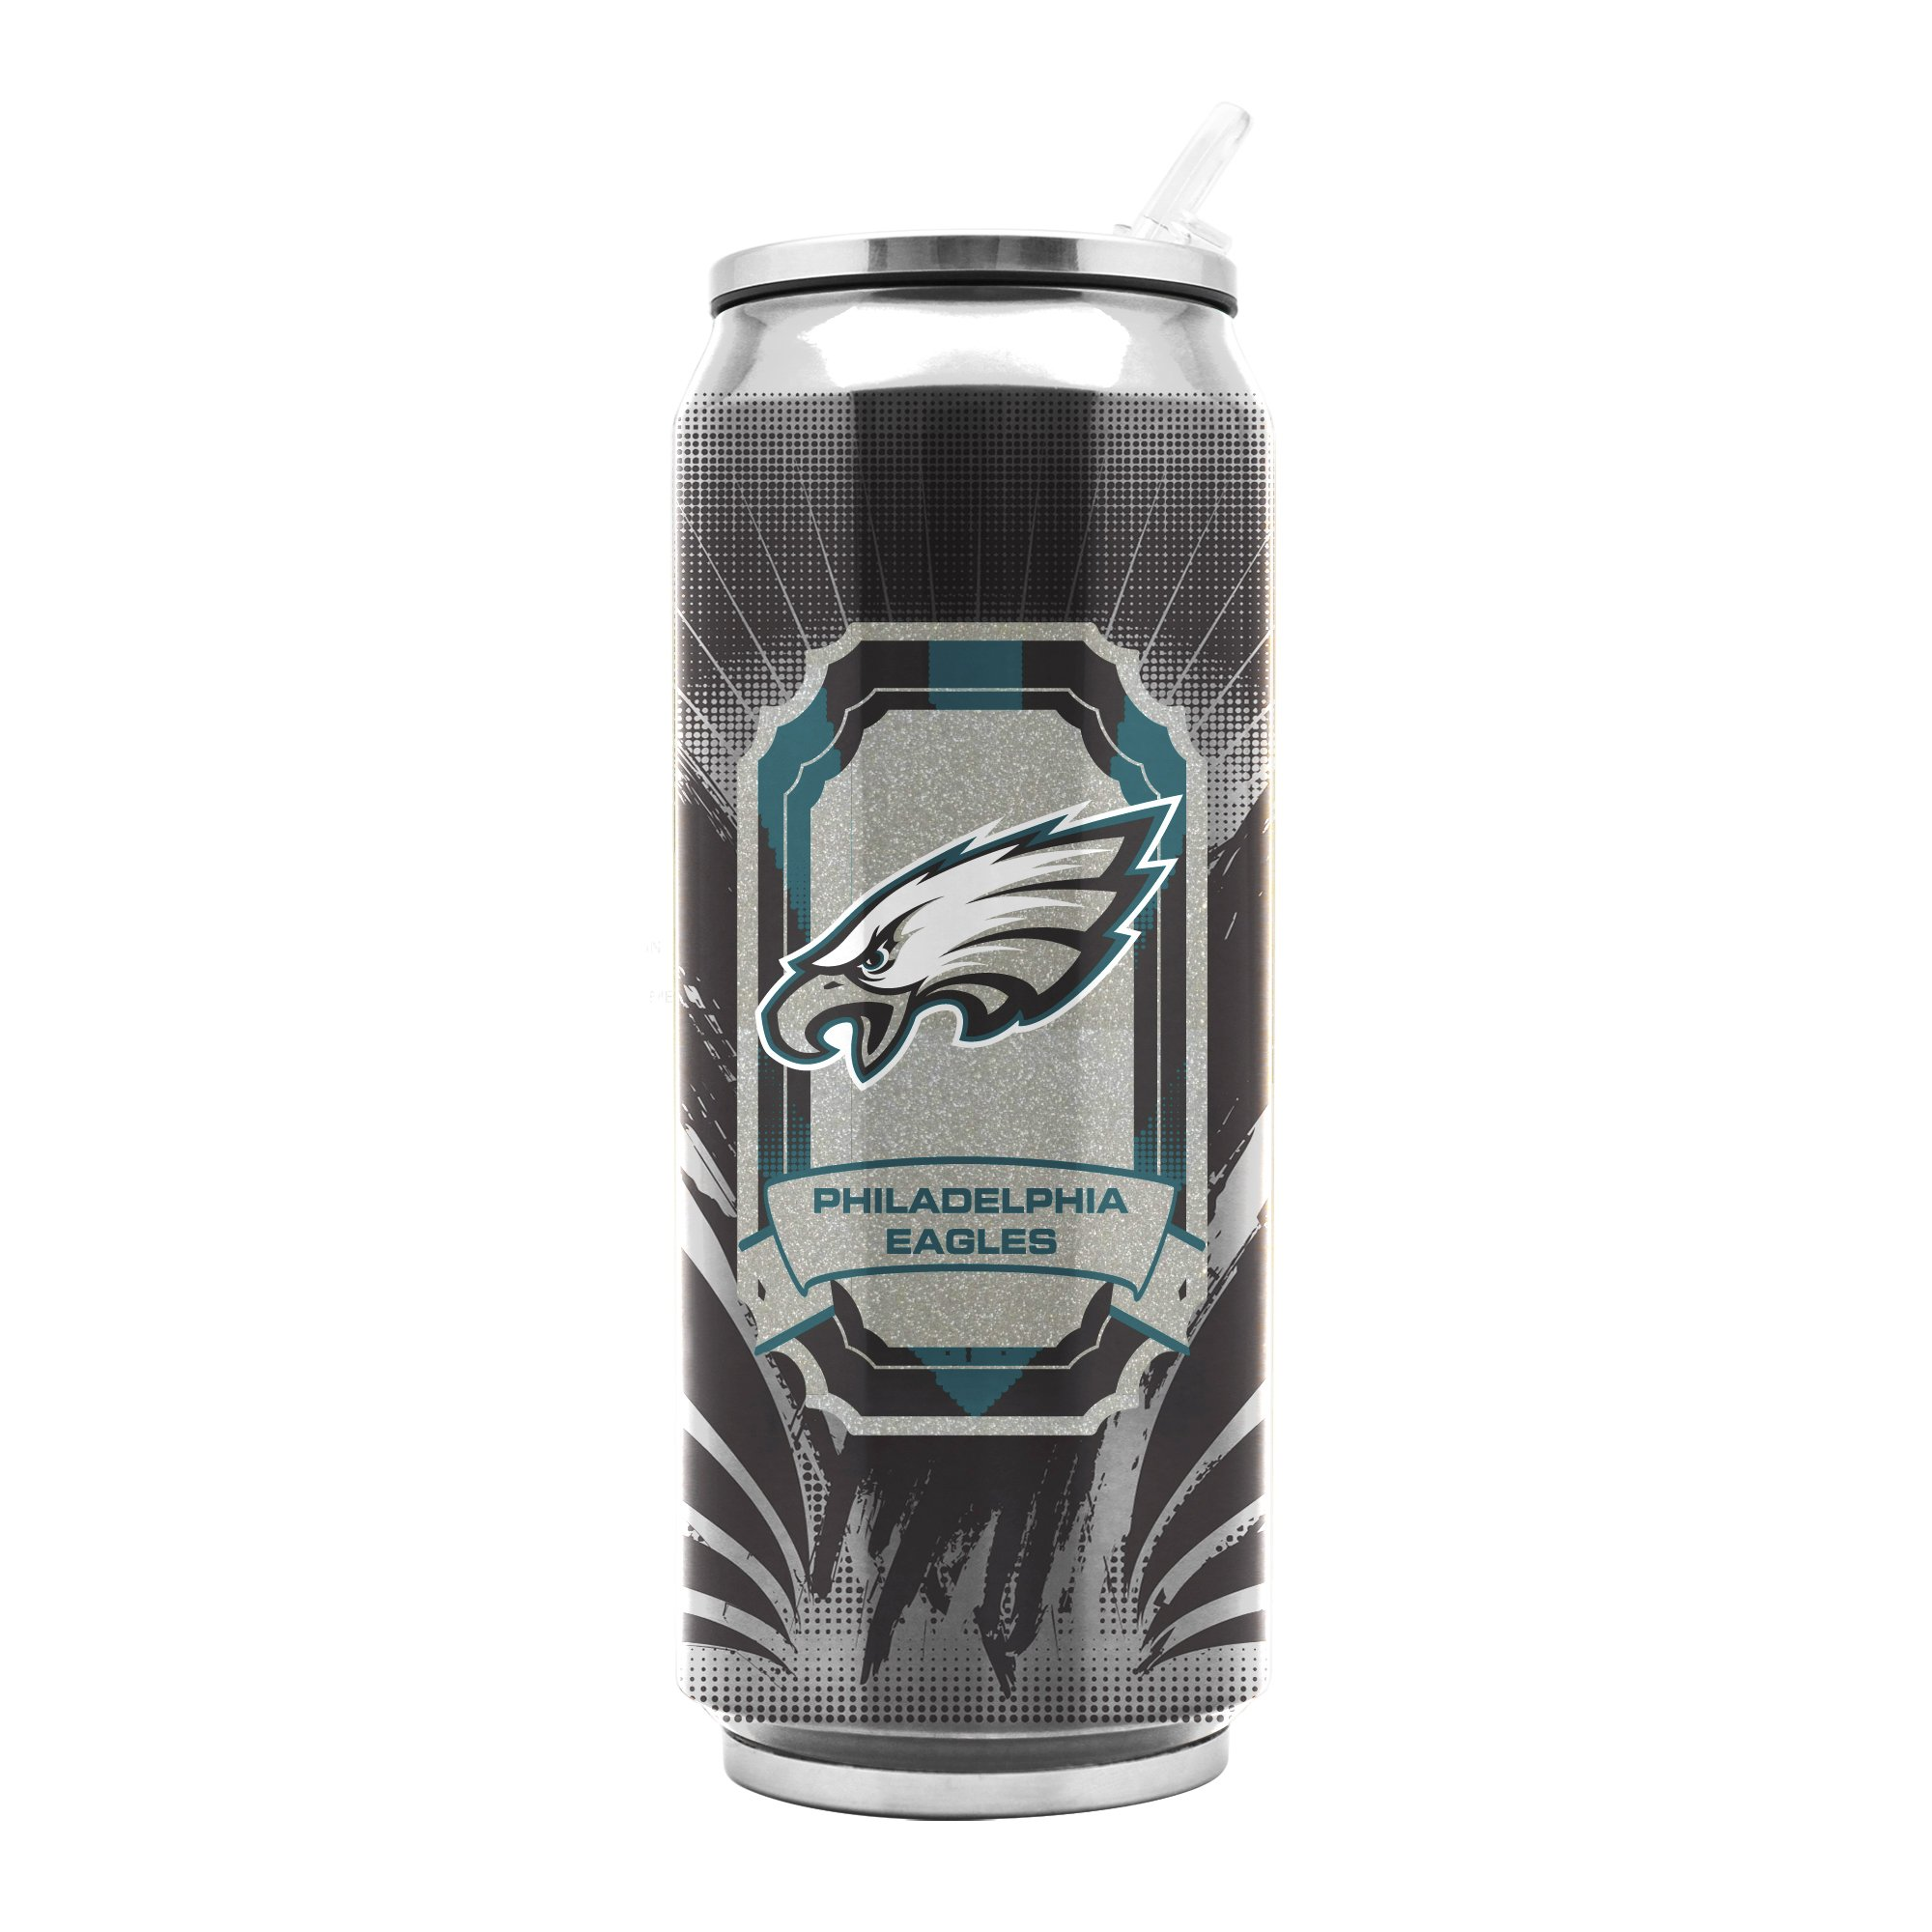 NFL Philadelphia Eagles 11oz Double Wall Stainless Steel Thermocan by Duck House